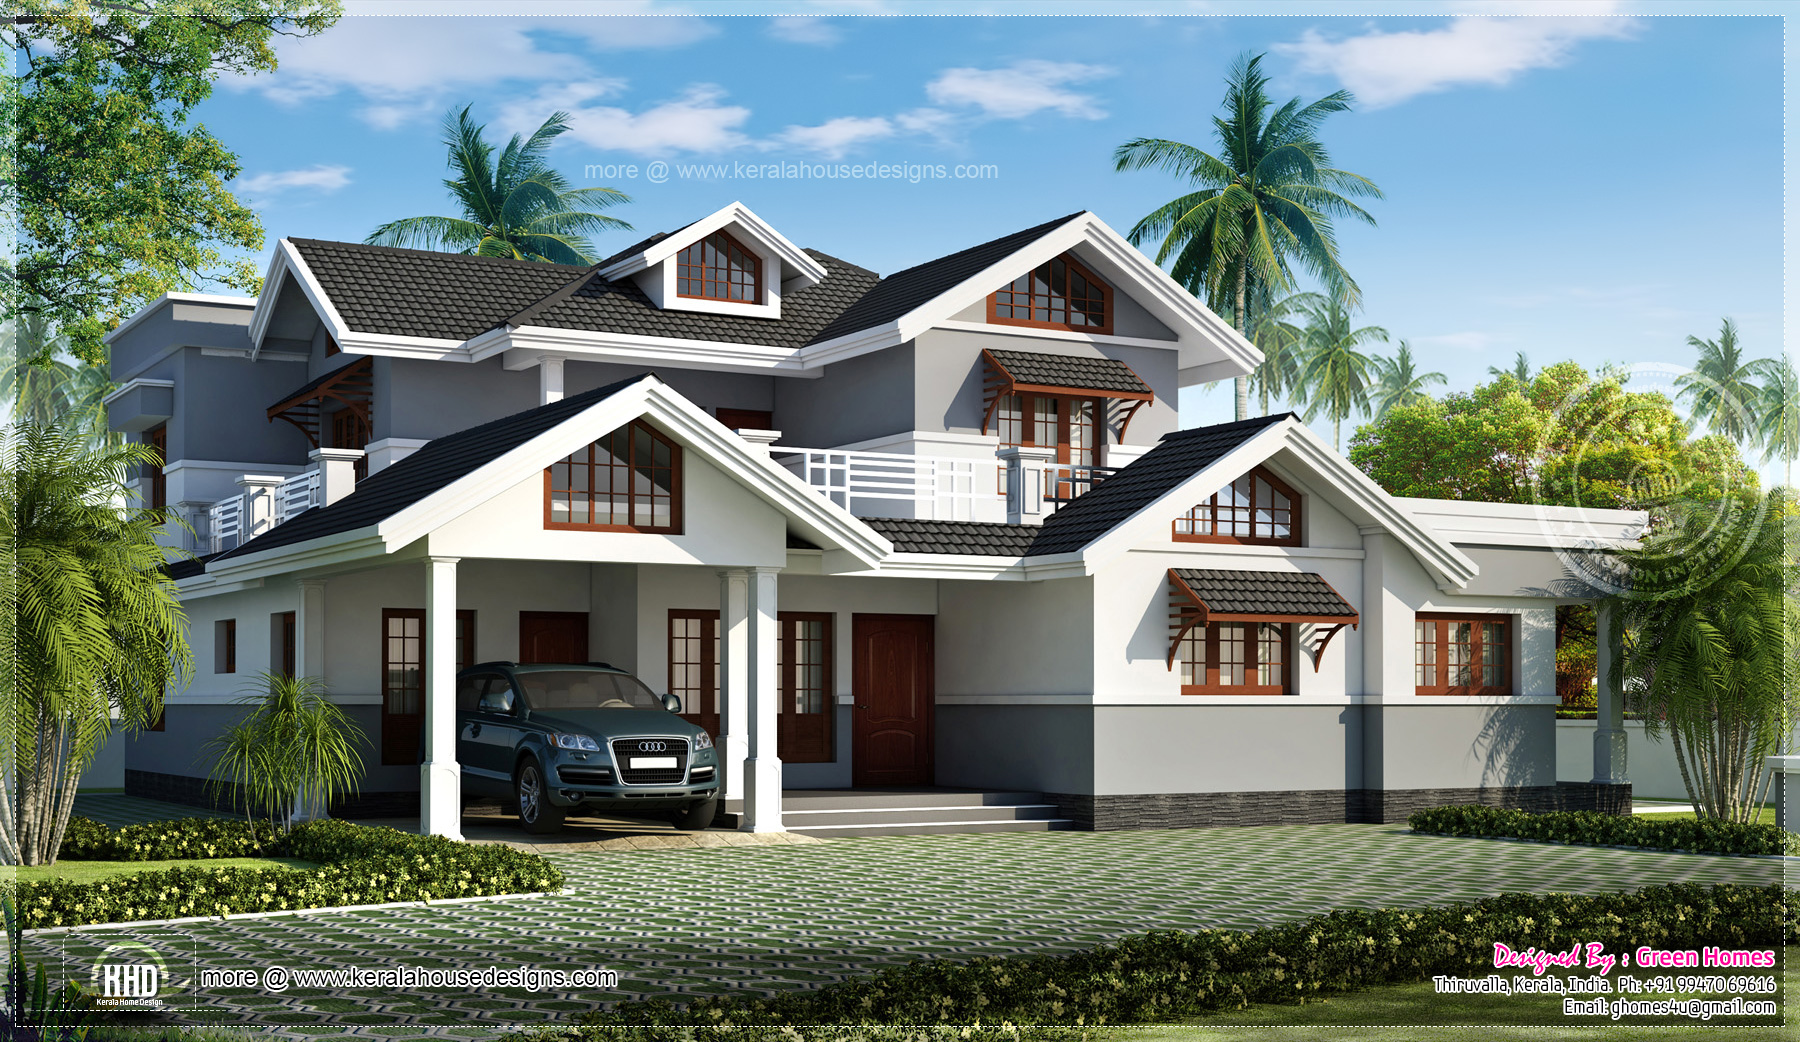 house design with luxury amenities comes in just 3230 sq